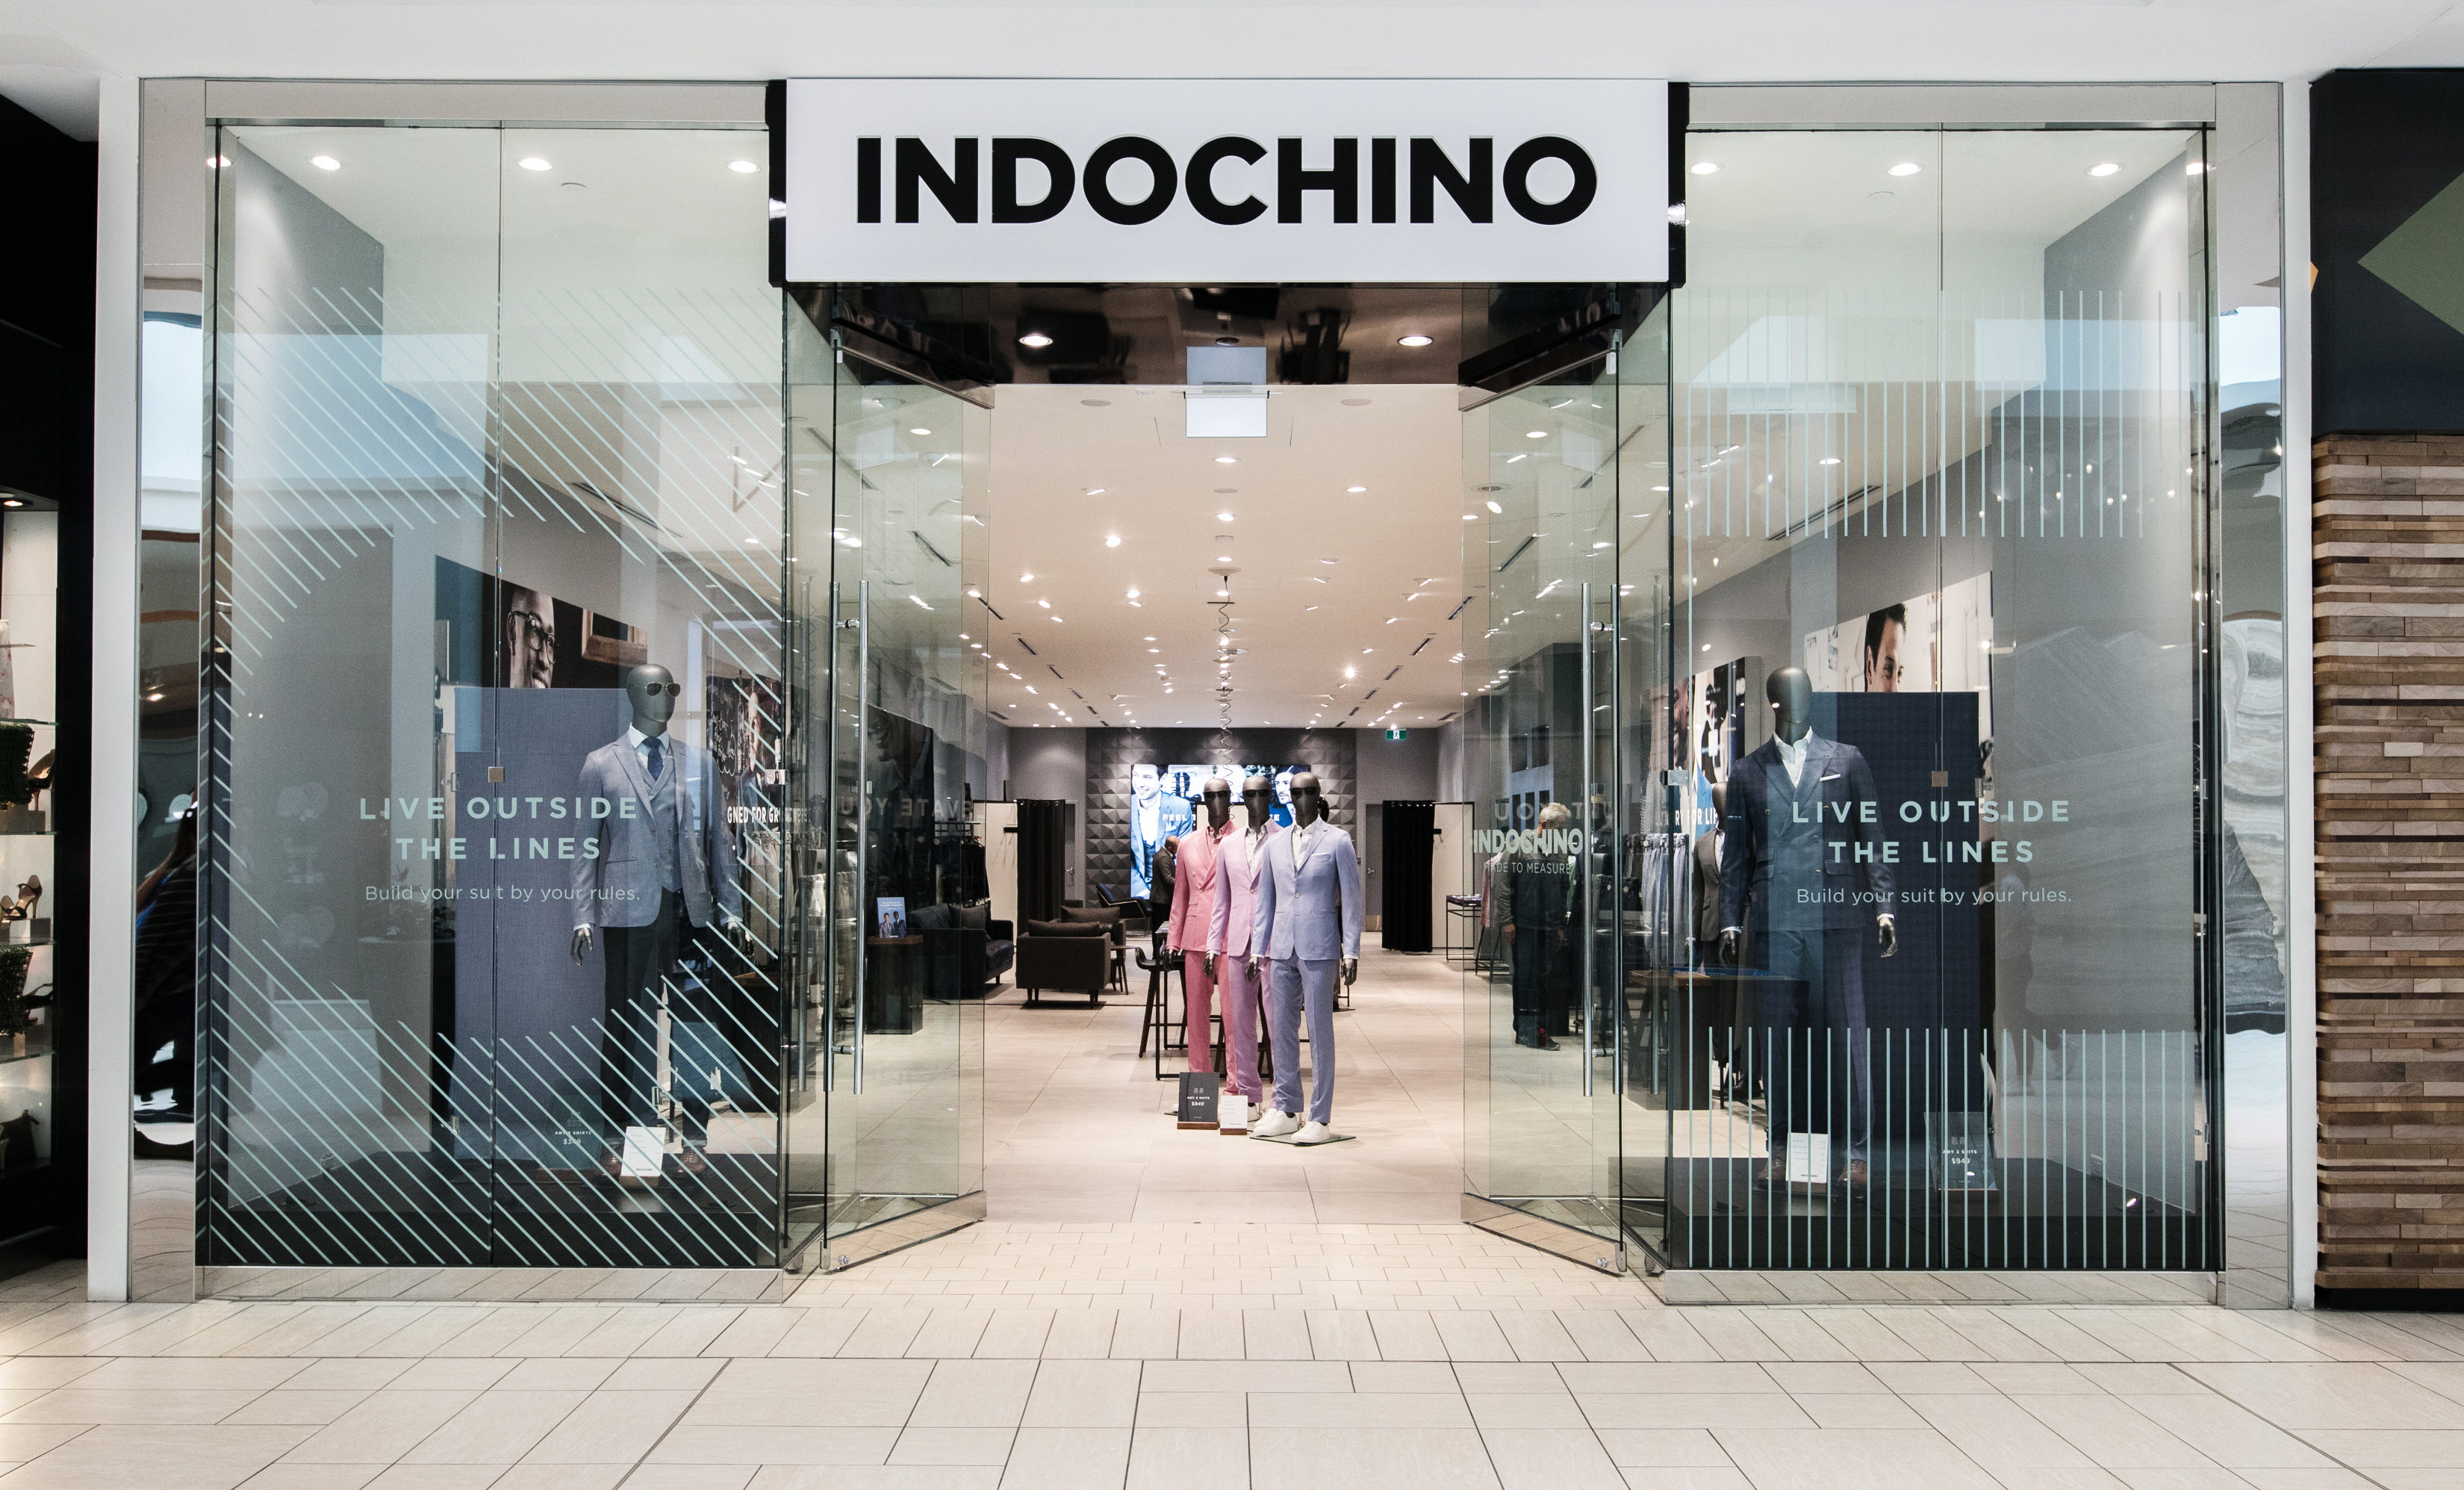 The Indochino showroom in Calgary, Canada.